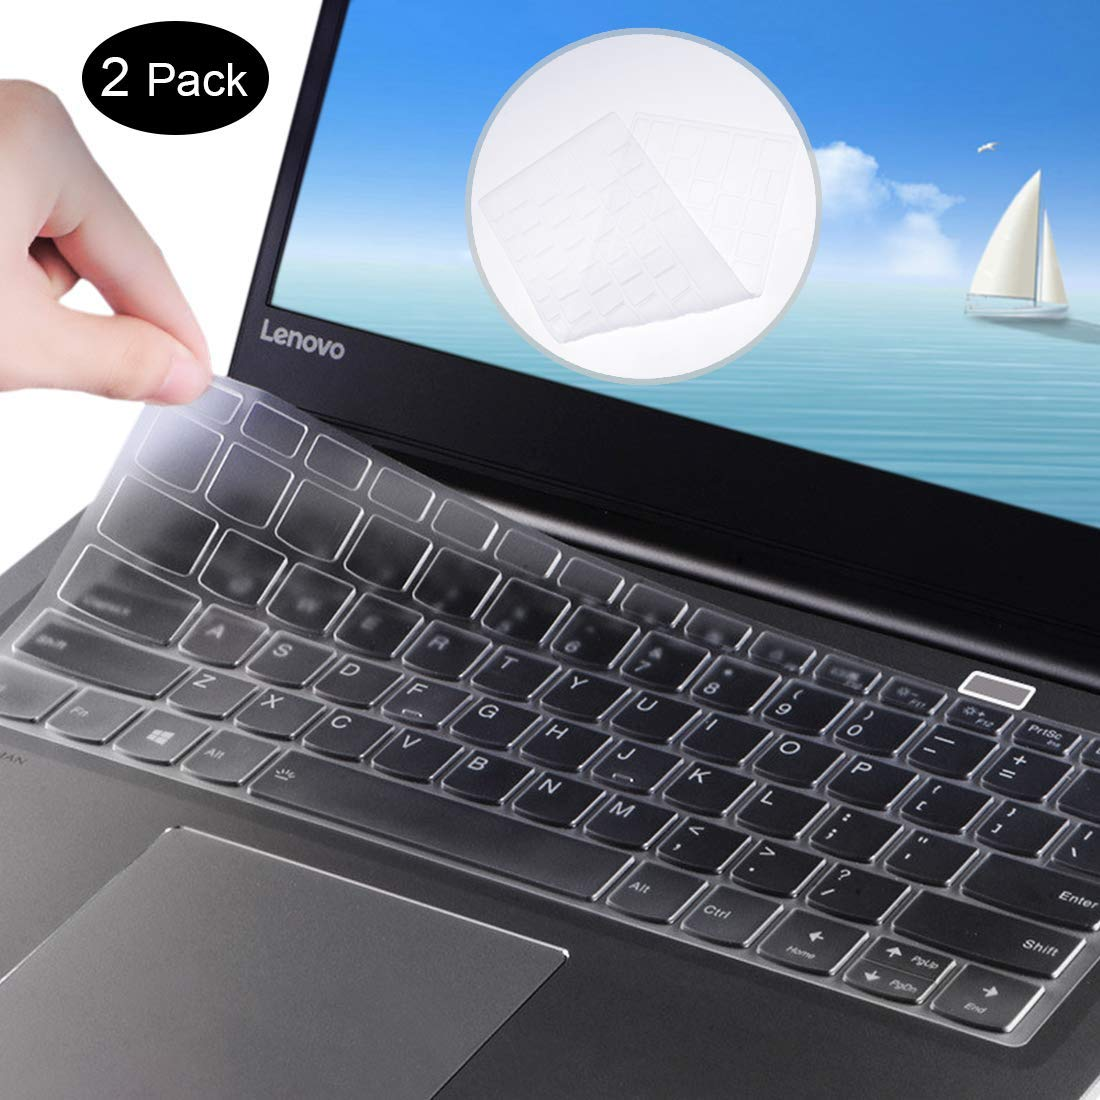 [2 Pack] Silicone Keyboard Protector Skin for Lenovo Flex 6 14 inch, Flex 5 14 inch, Flex 5 15.6 inch, Lenovo Yoga 720 15.6 inch Laptop Anti Dust Keyboard Cover (Clear)